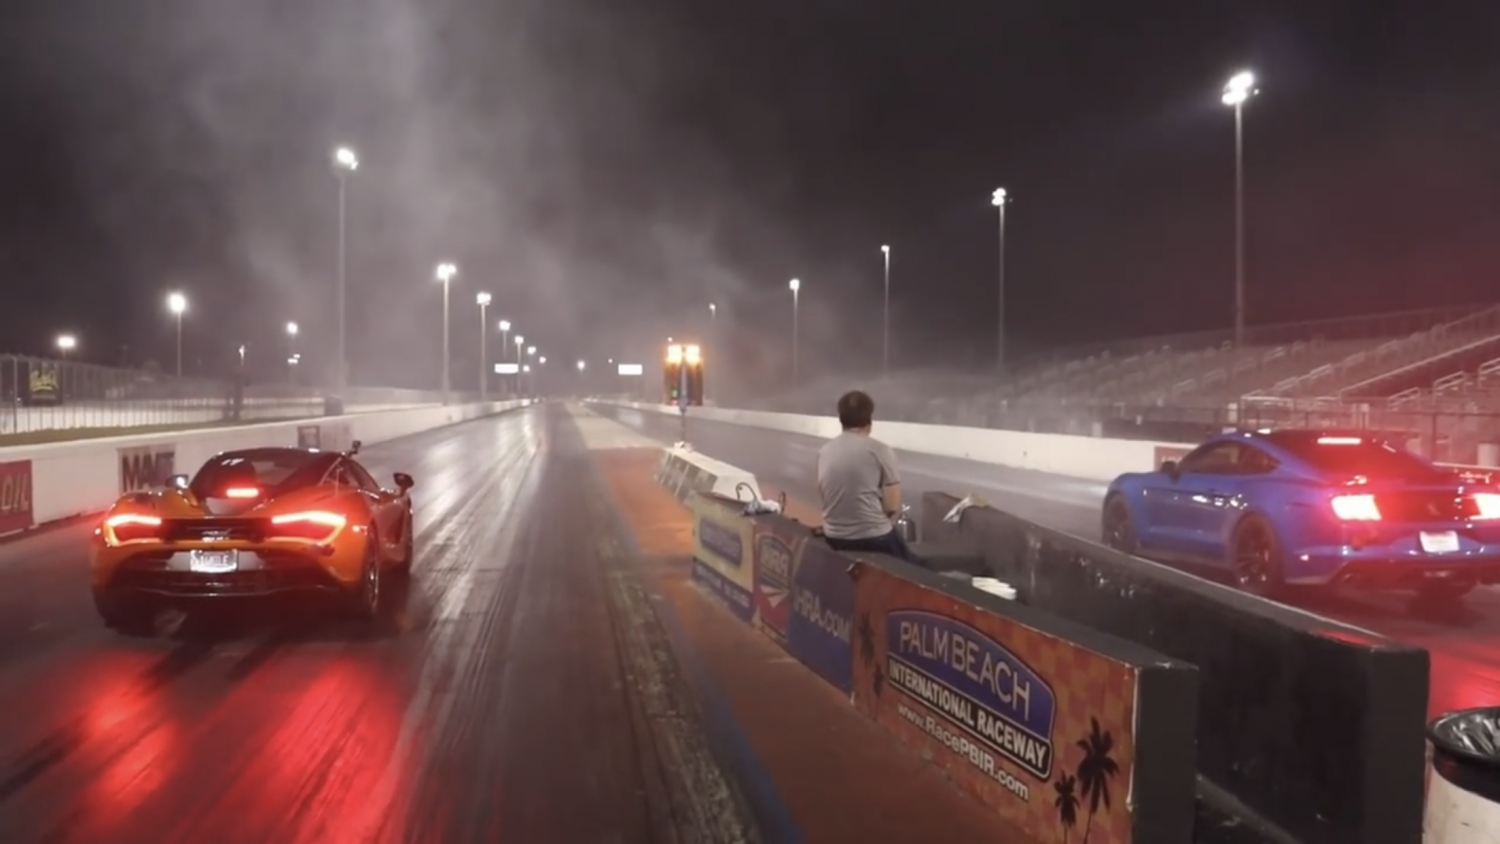 Dragracing 720S vs Shelby GT500 - Ny konge på 1/4 mile banen